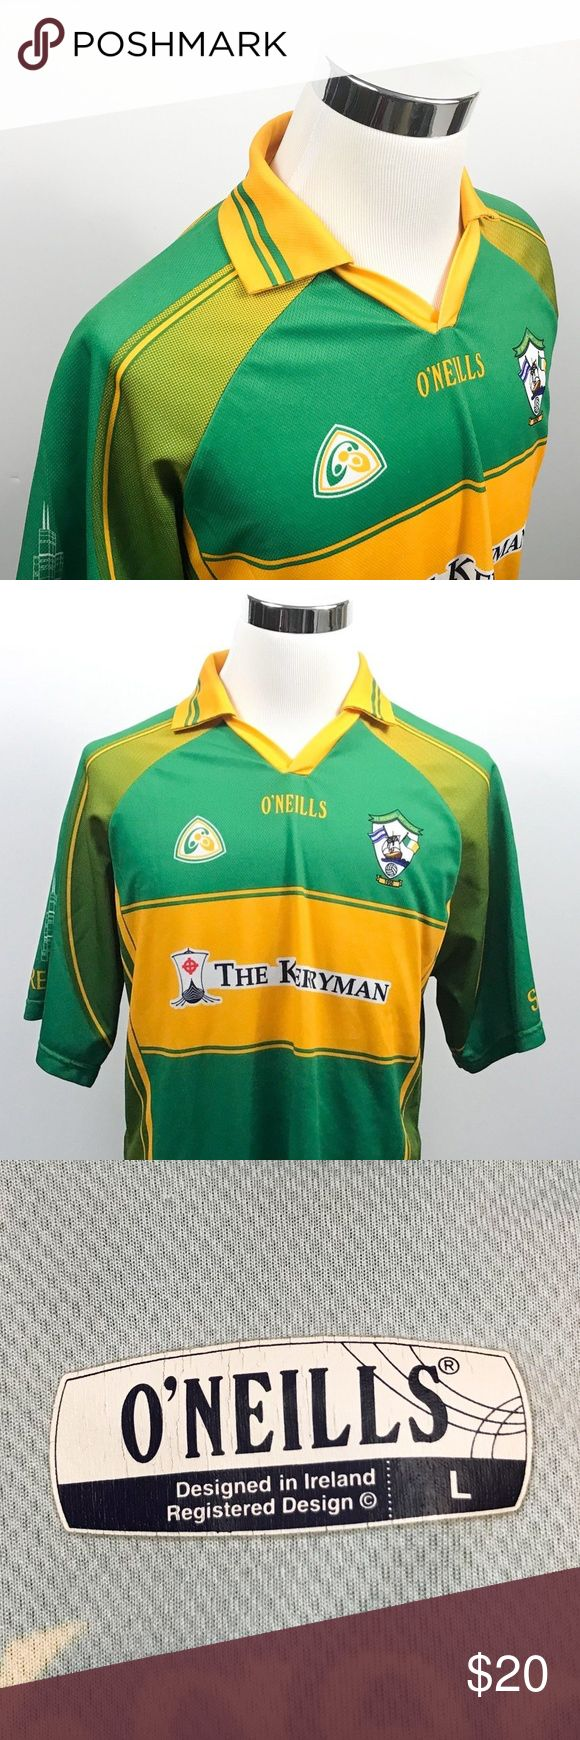 ONeills Large St Brendans Jersey Gaelic Football ONeills Mens Large St Brendans Jersey Gaelic Football Club Chicago Green Yellow  Measurements (inches): Pit to Pit (across the chest): 22.5 Length (top of collar to hem): 32  Condition:  This item is in good pre-owned condition! Free from rips & stains.  All items come from a smoke/ pet free environment. O'Neills Shirts Polos